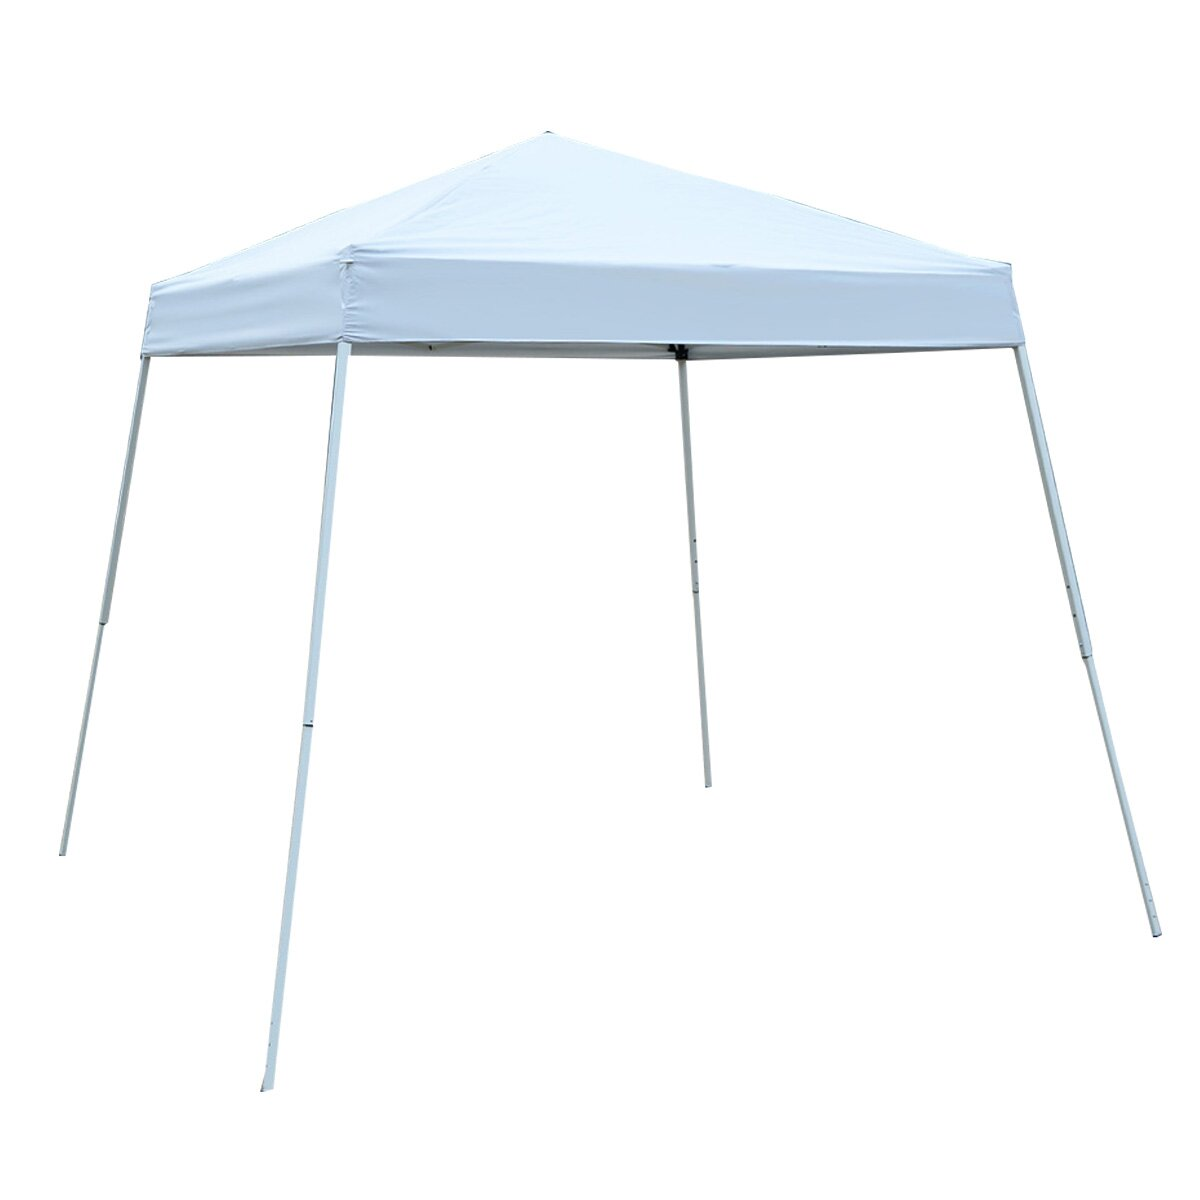 Gymax Wedding Party Canopy Shelter 8'X 8' Tent Gazebo Carry Bag White